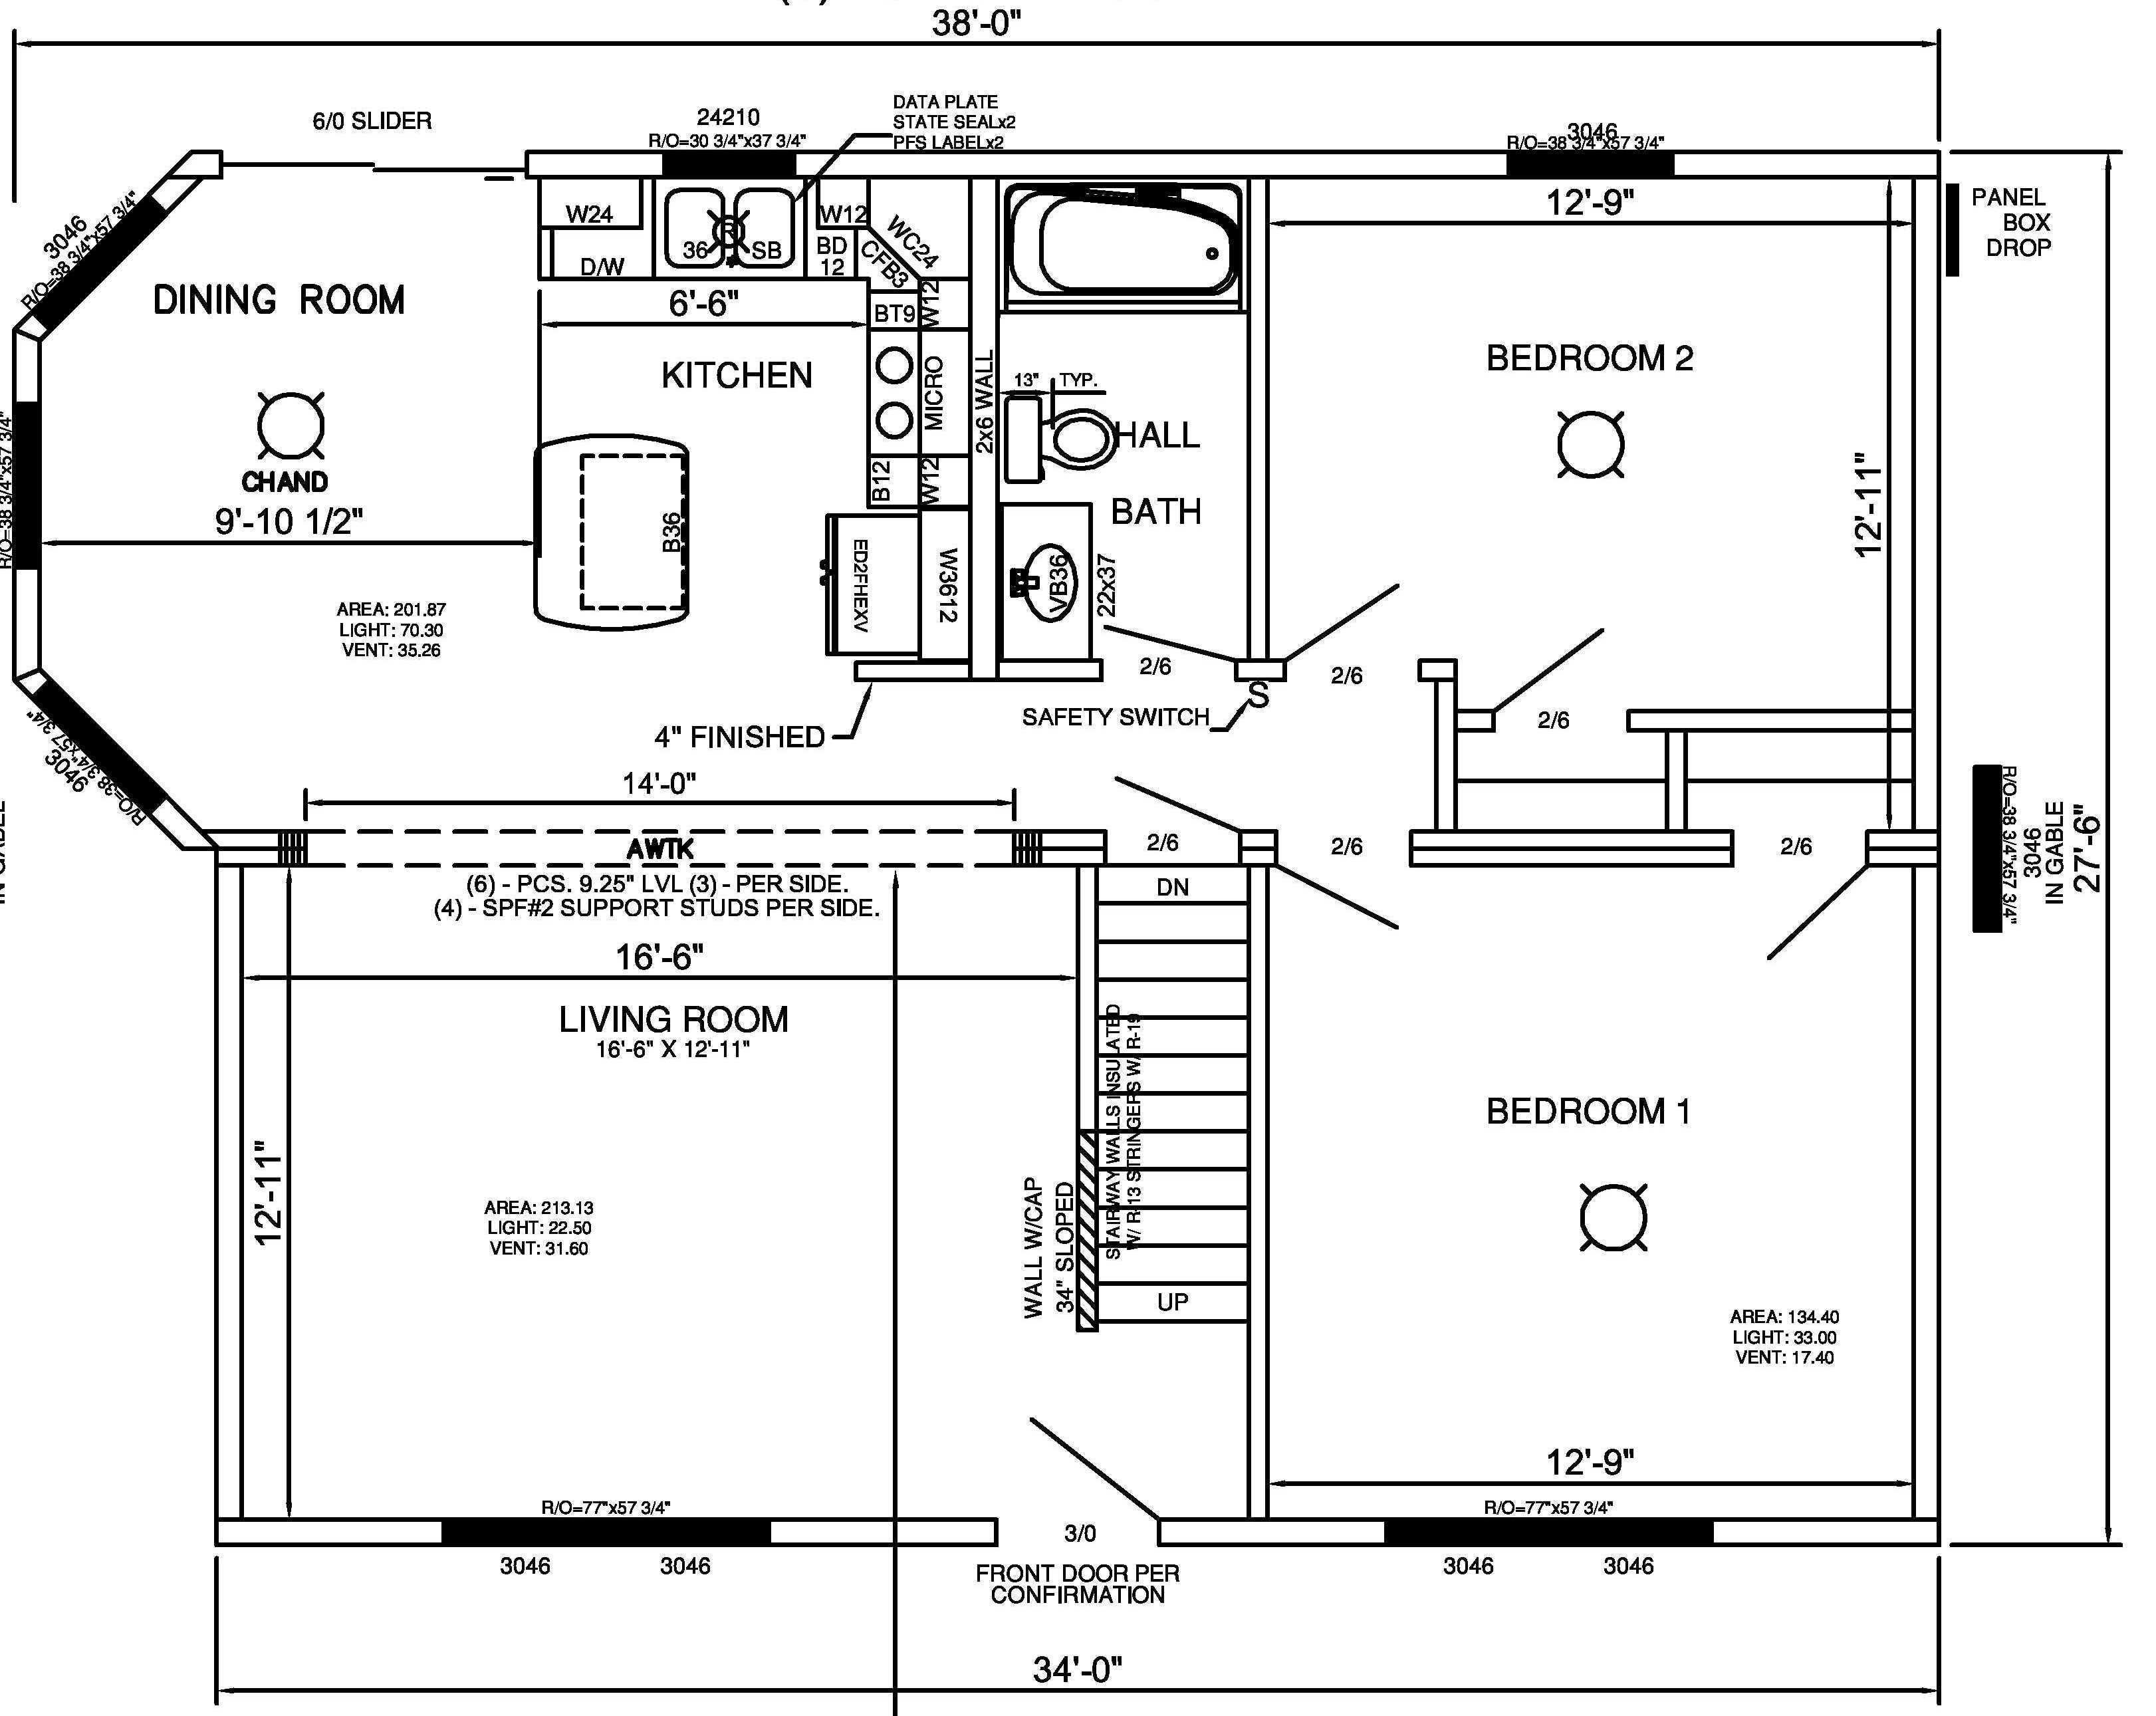 mobile home dealers michigan with New Era Modular Home Floor Plans on 31047035 together with Vintage Rv Sale Ready Start Summer Trip besides 31047035 further Indoor Soccer Field Positions 6 Players moreover Double Wide Mobile Homes New.